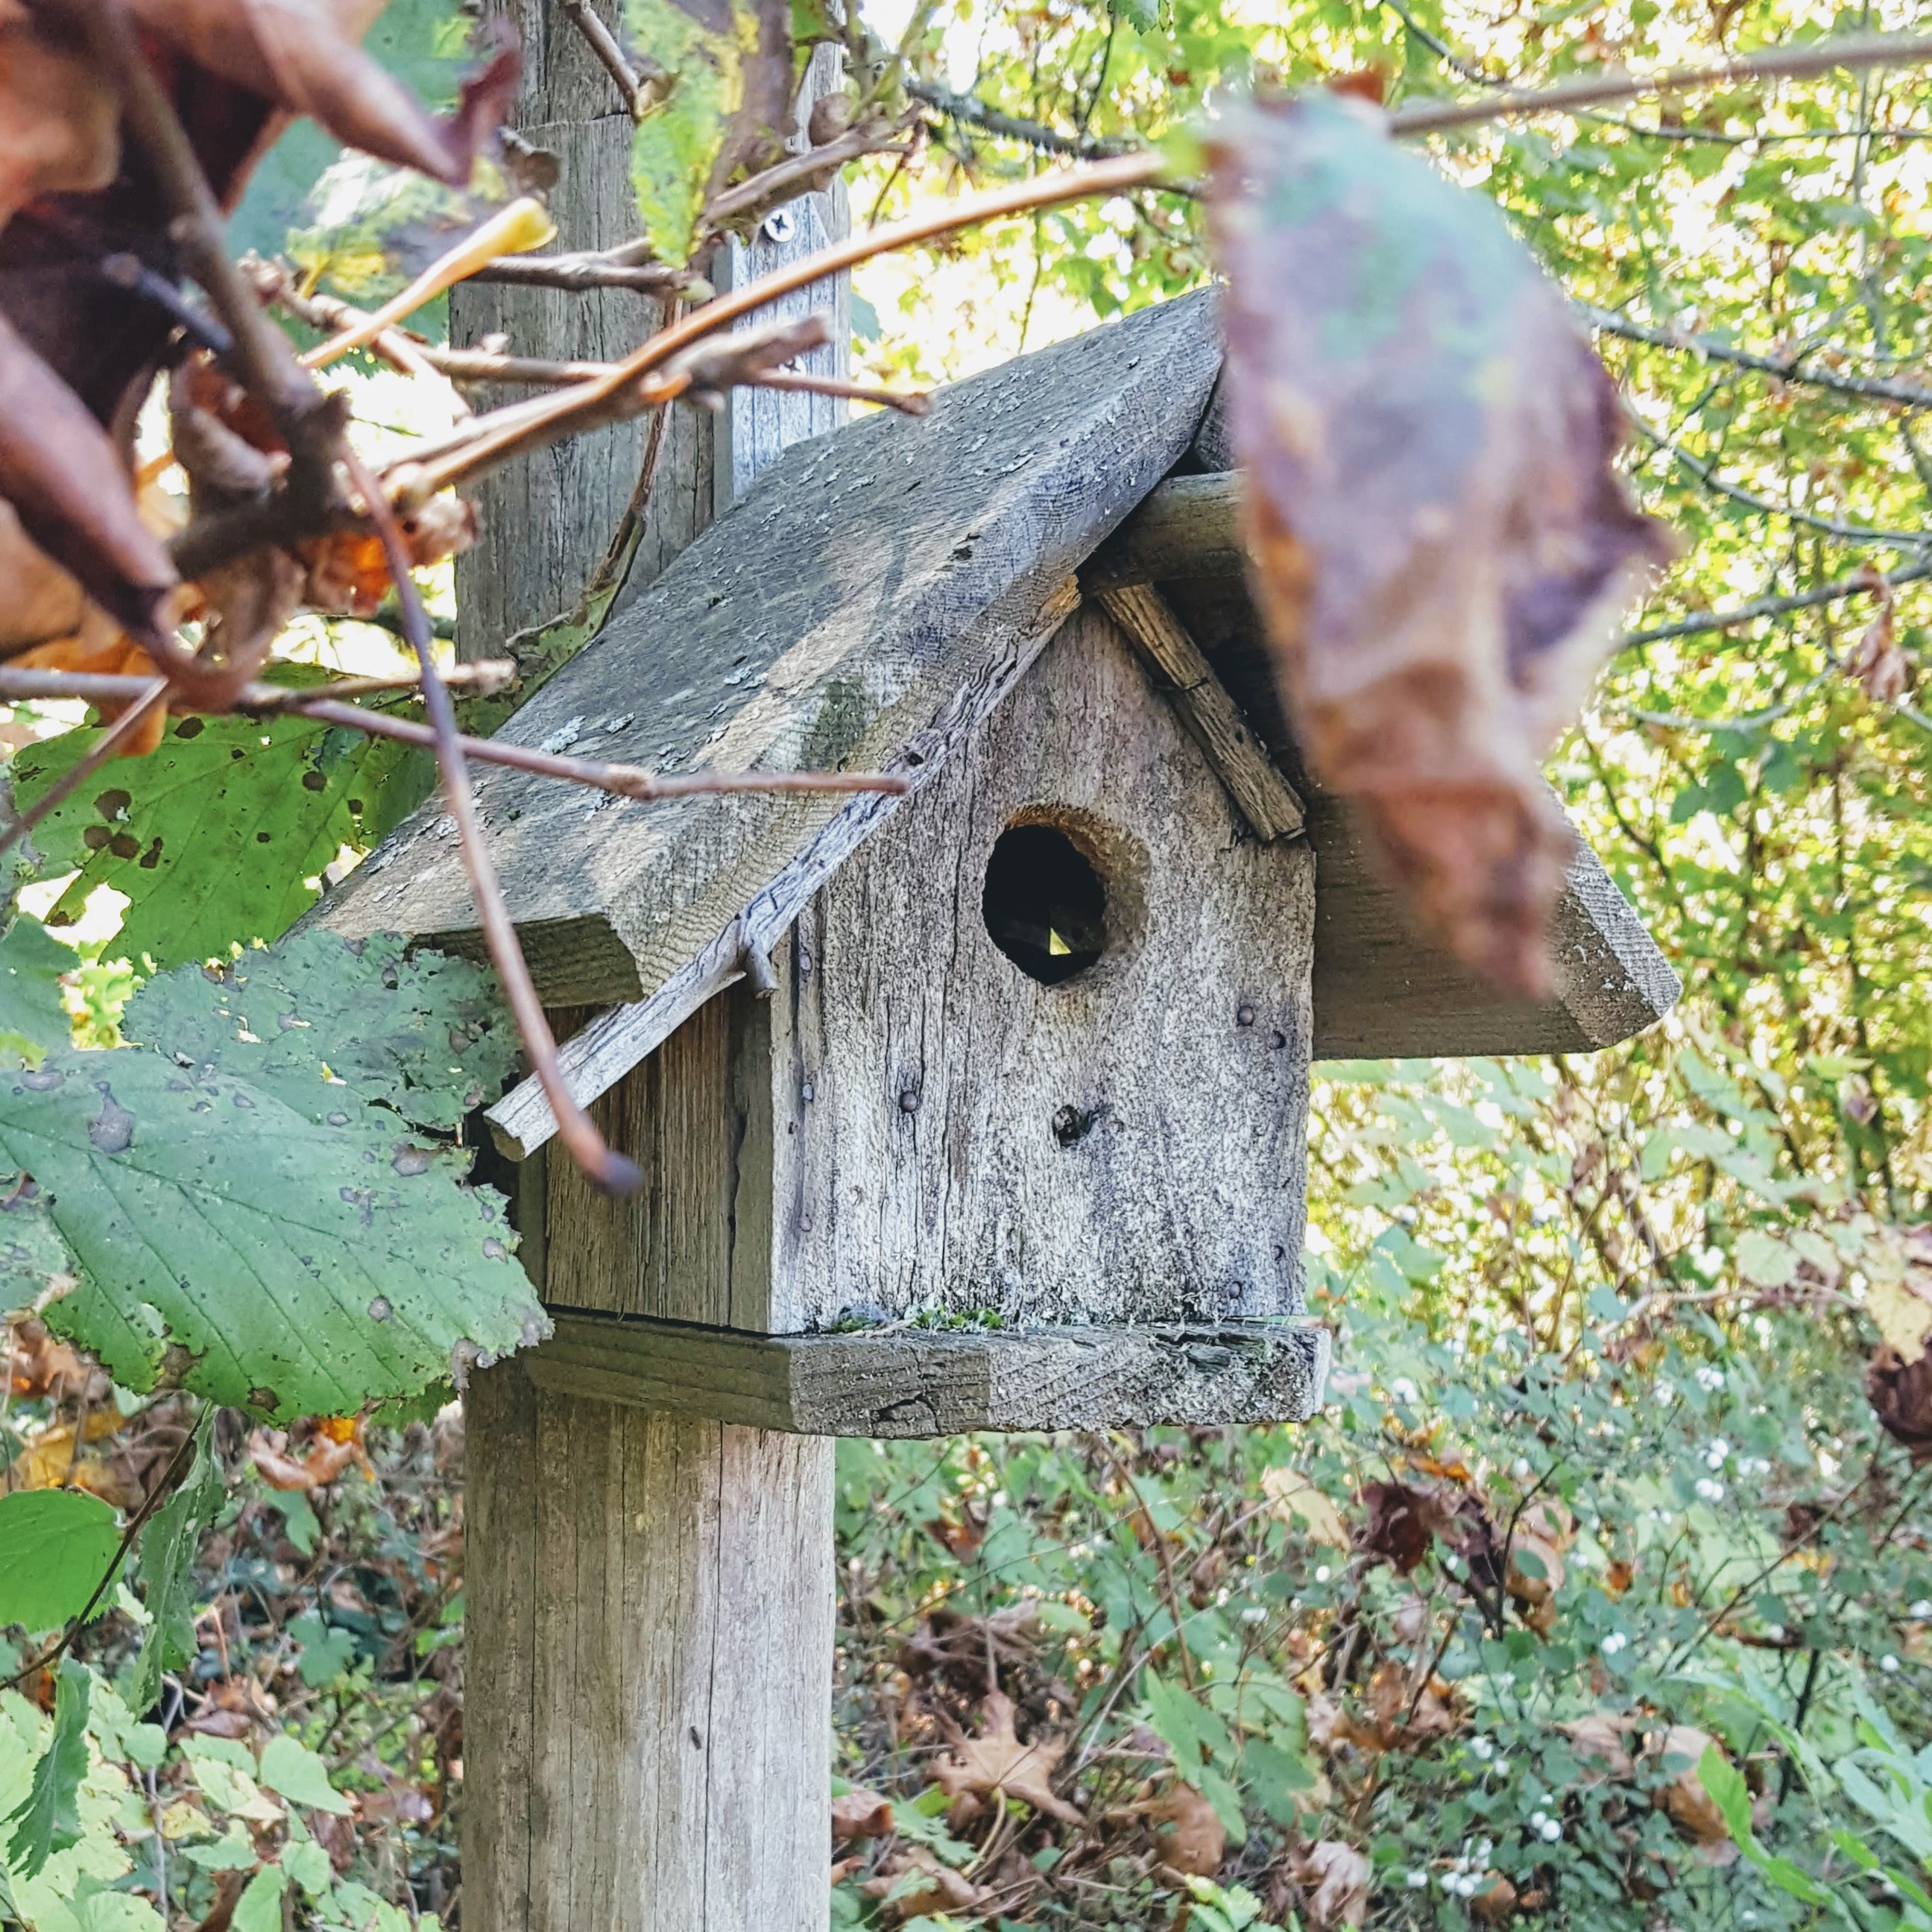 Poetic birdhouse